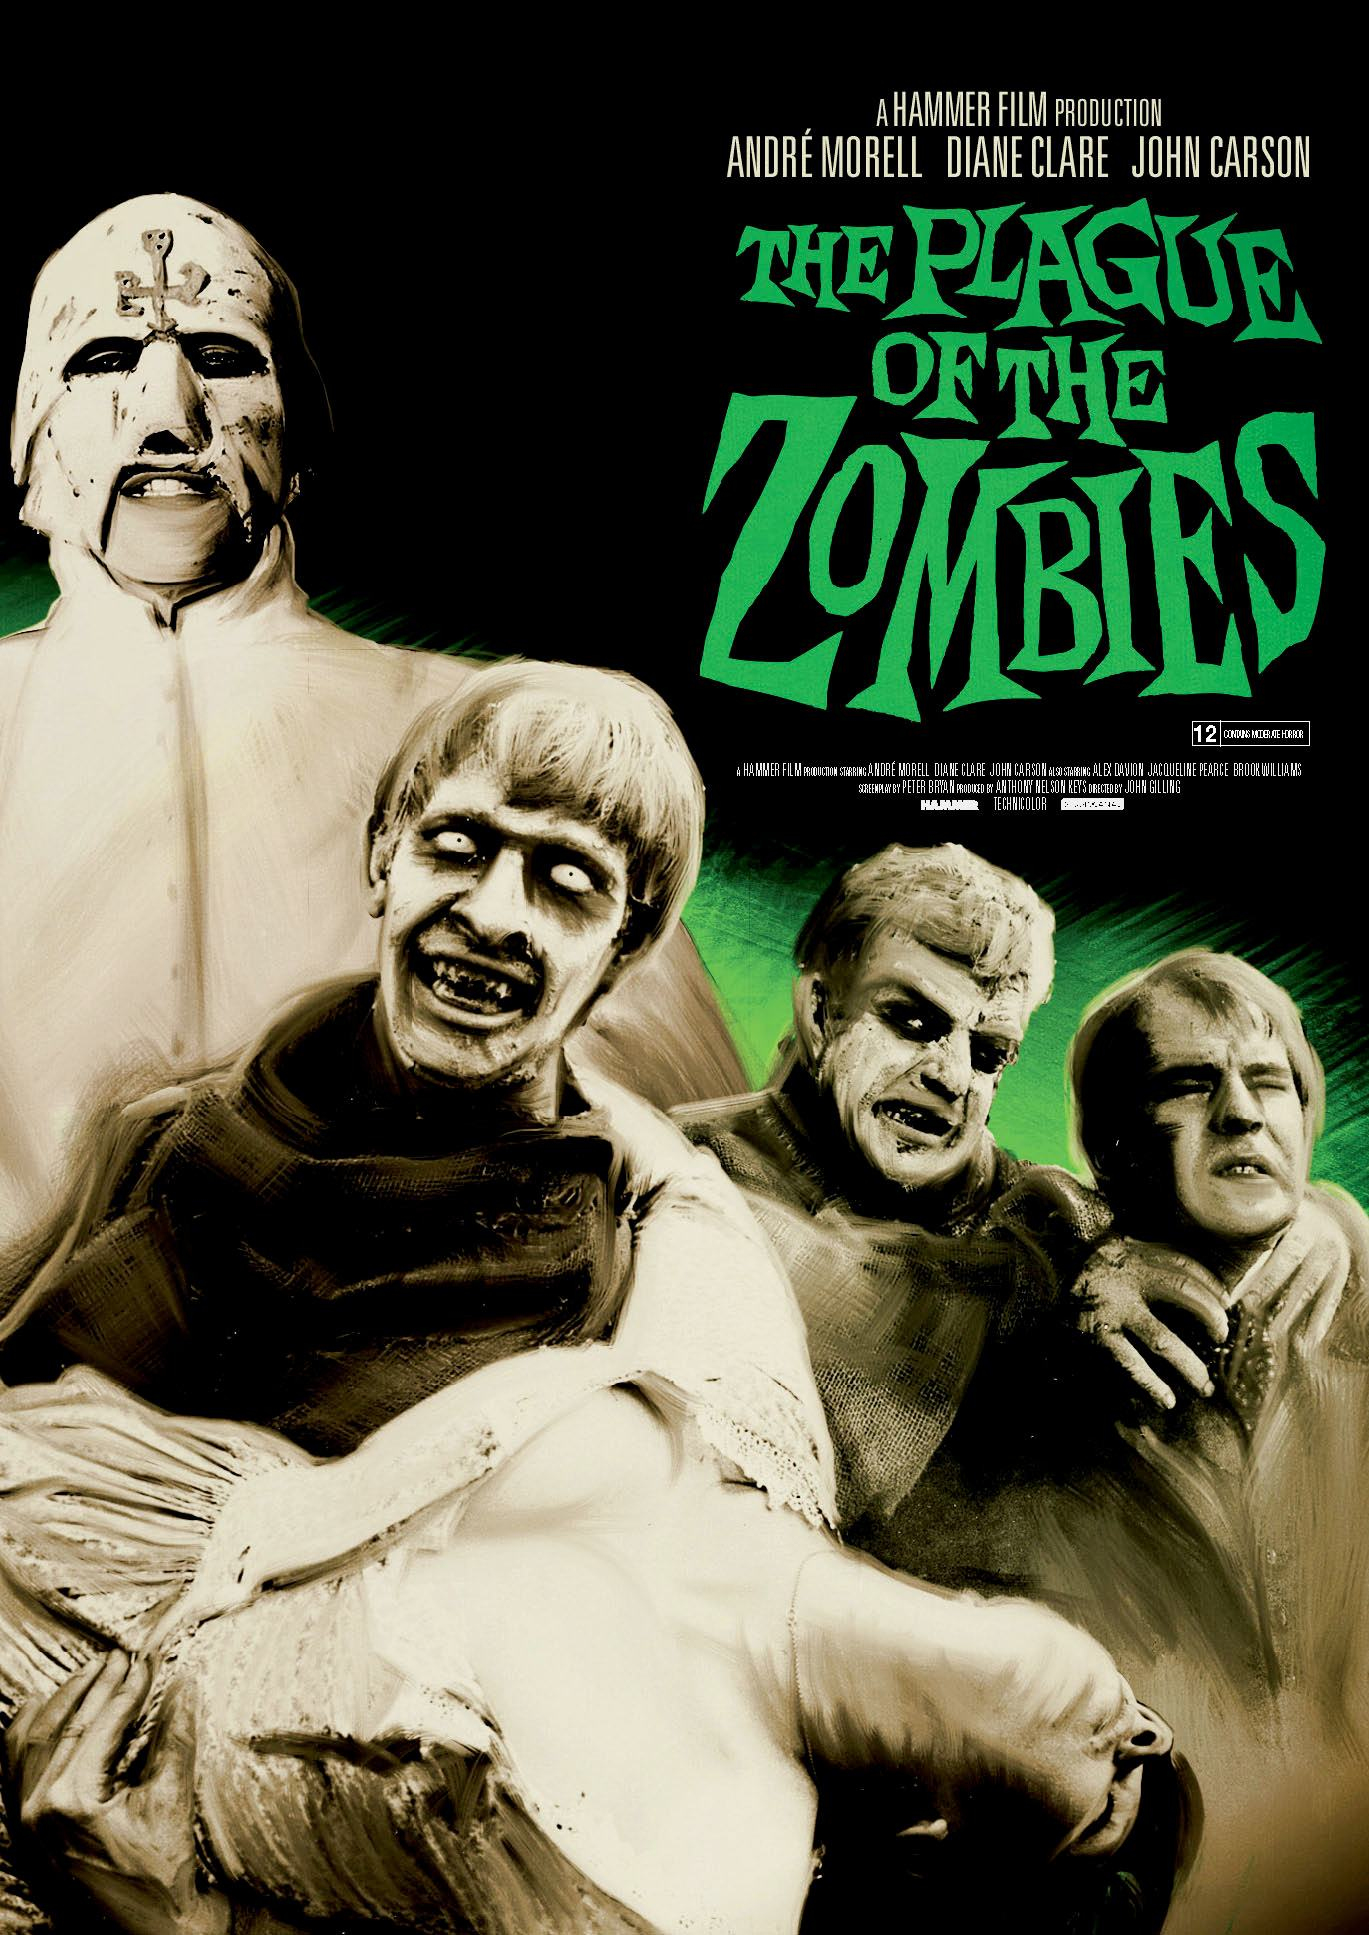 plague-of-the-zombies-hammer-films-08